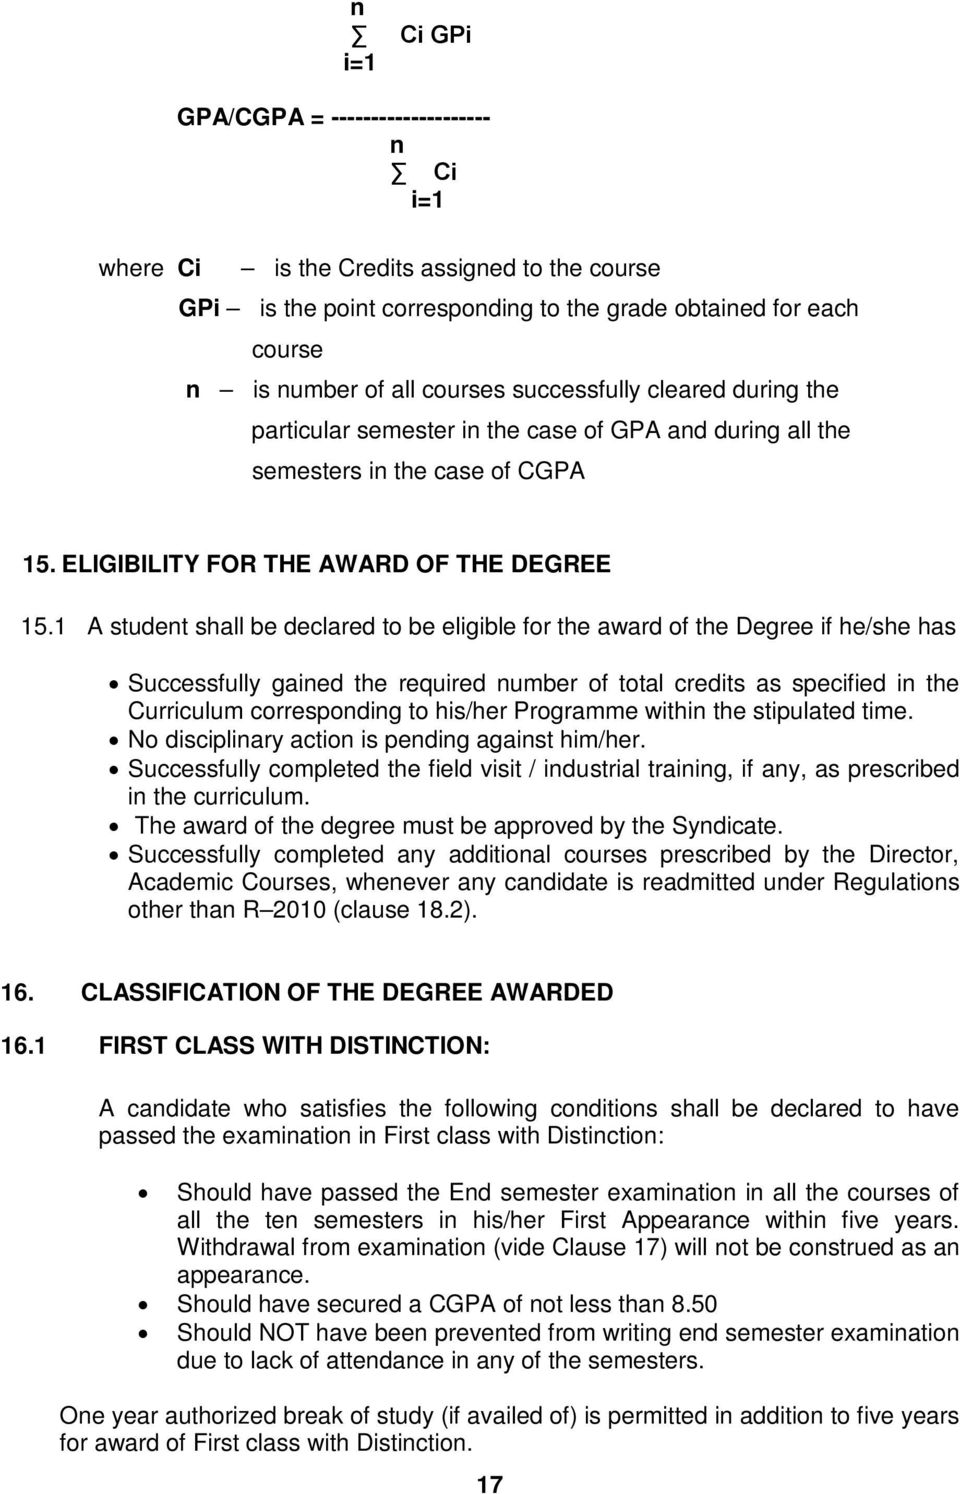 1 A student shall be declared to be eligible for the award of the Degree if he/she has Successfully gained the required number of total credits as specified in the Curriculum corresponding to his/her